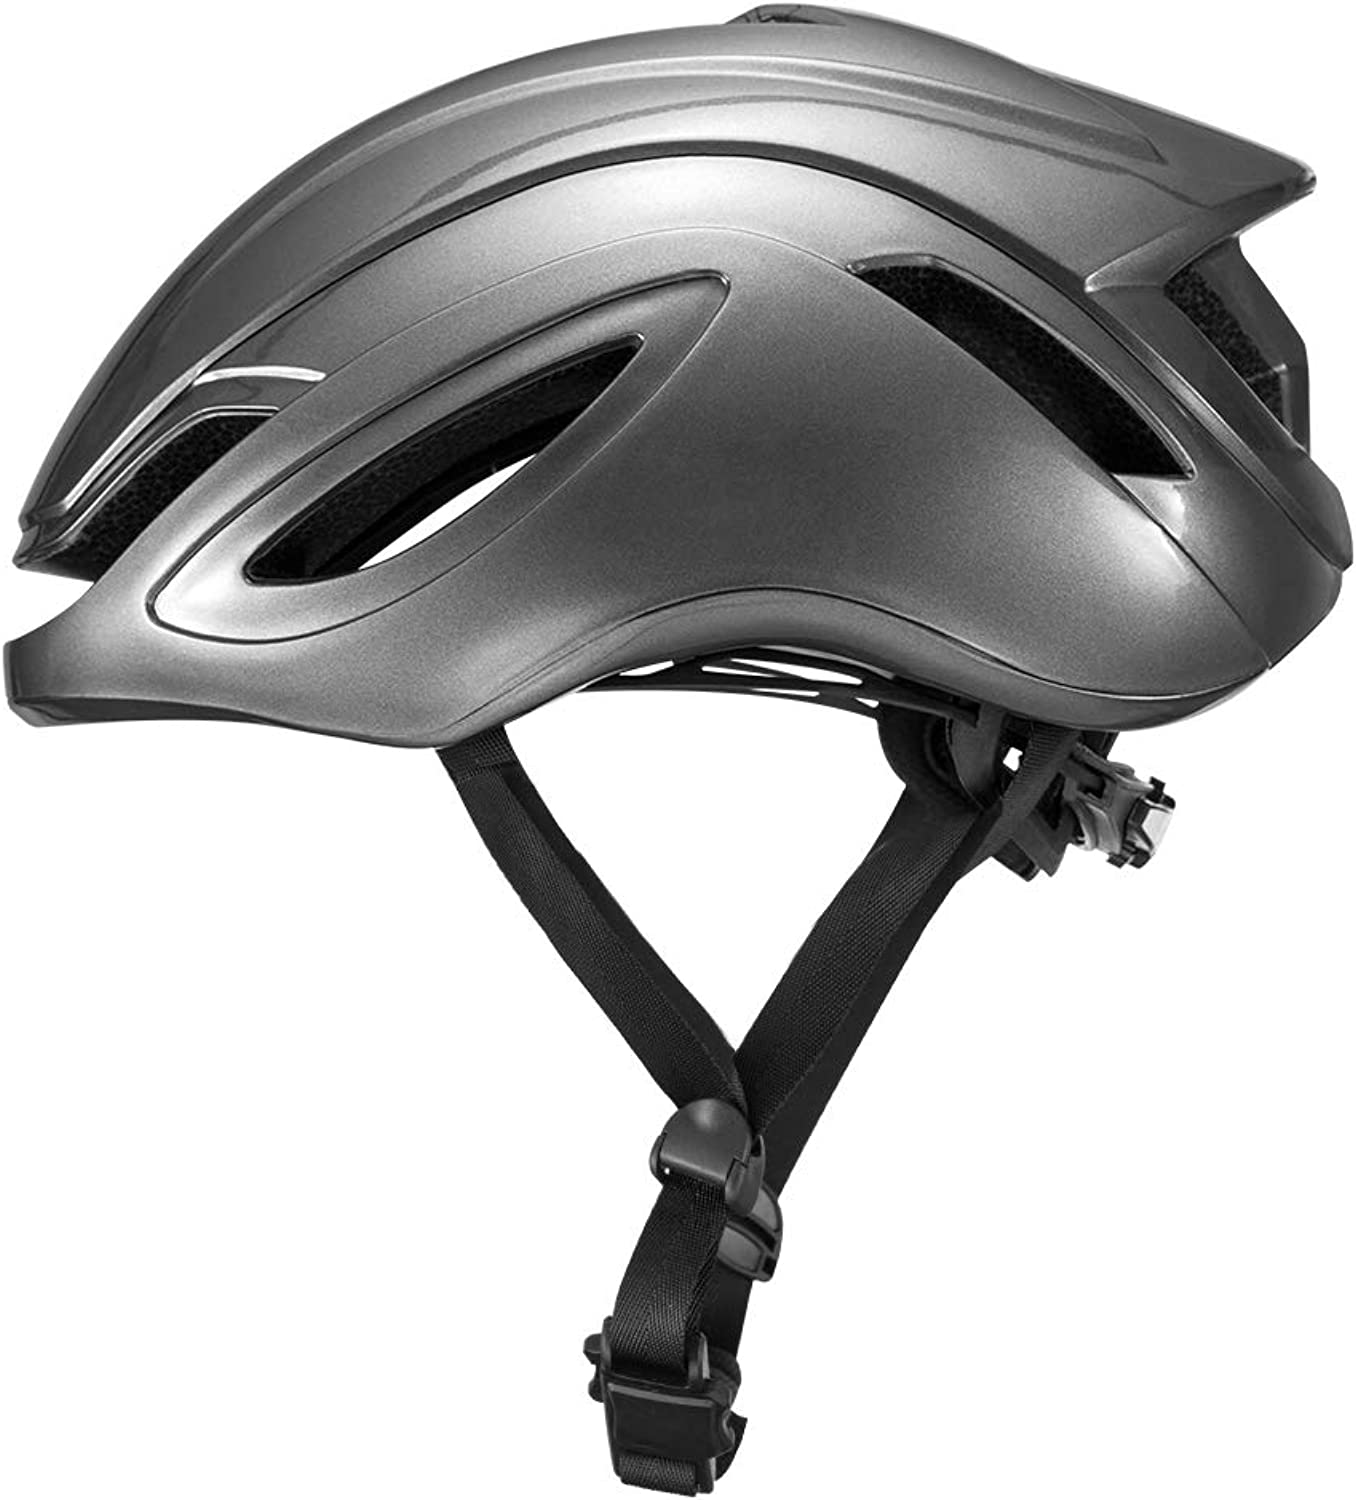 ROCK BROS Aero Road Bike Helmet TT Triathlon Aero Cycling Helmet Adjustable M L for Road Race Mountain Bikes Men Women